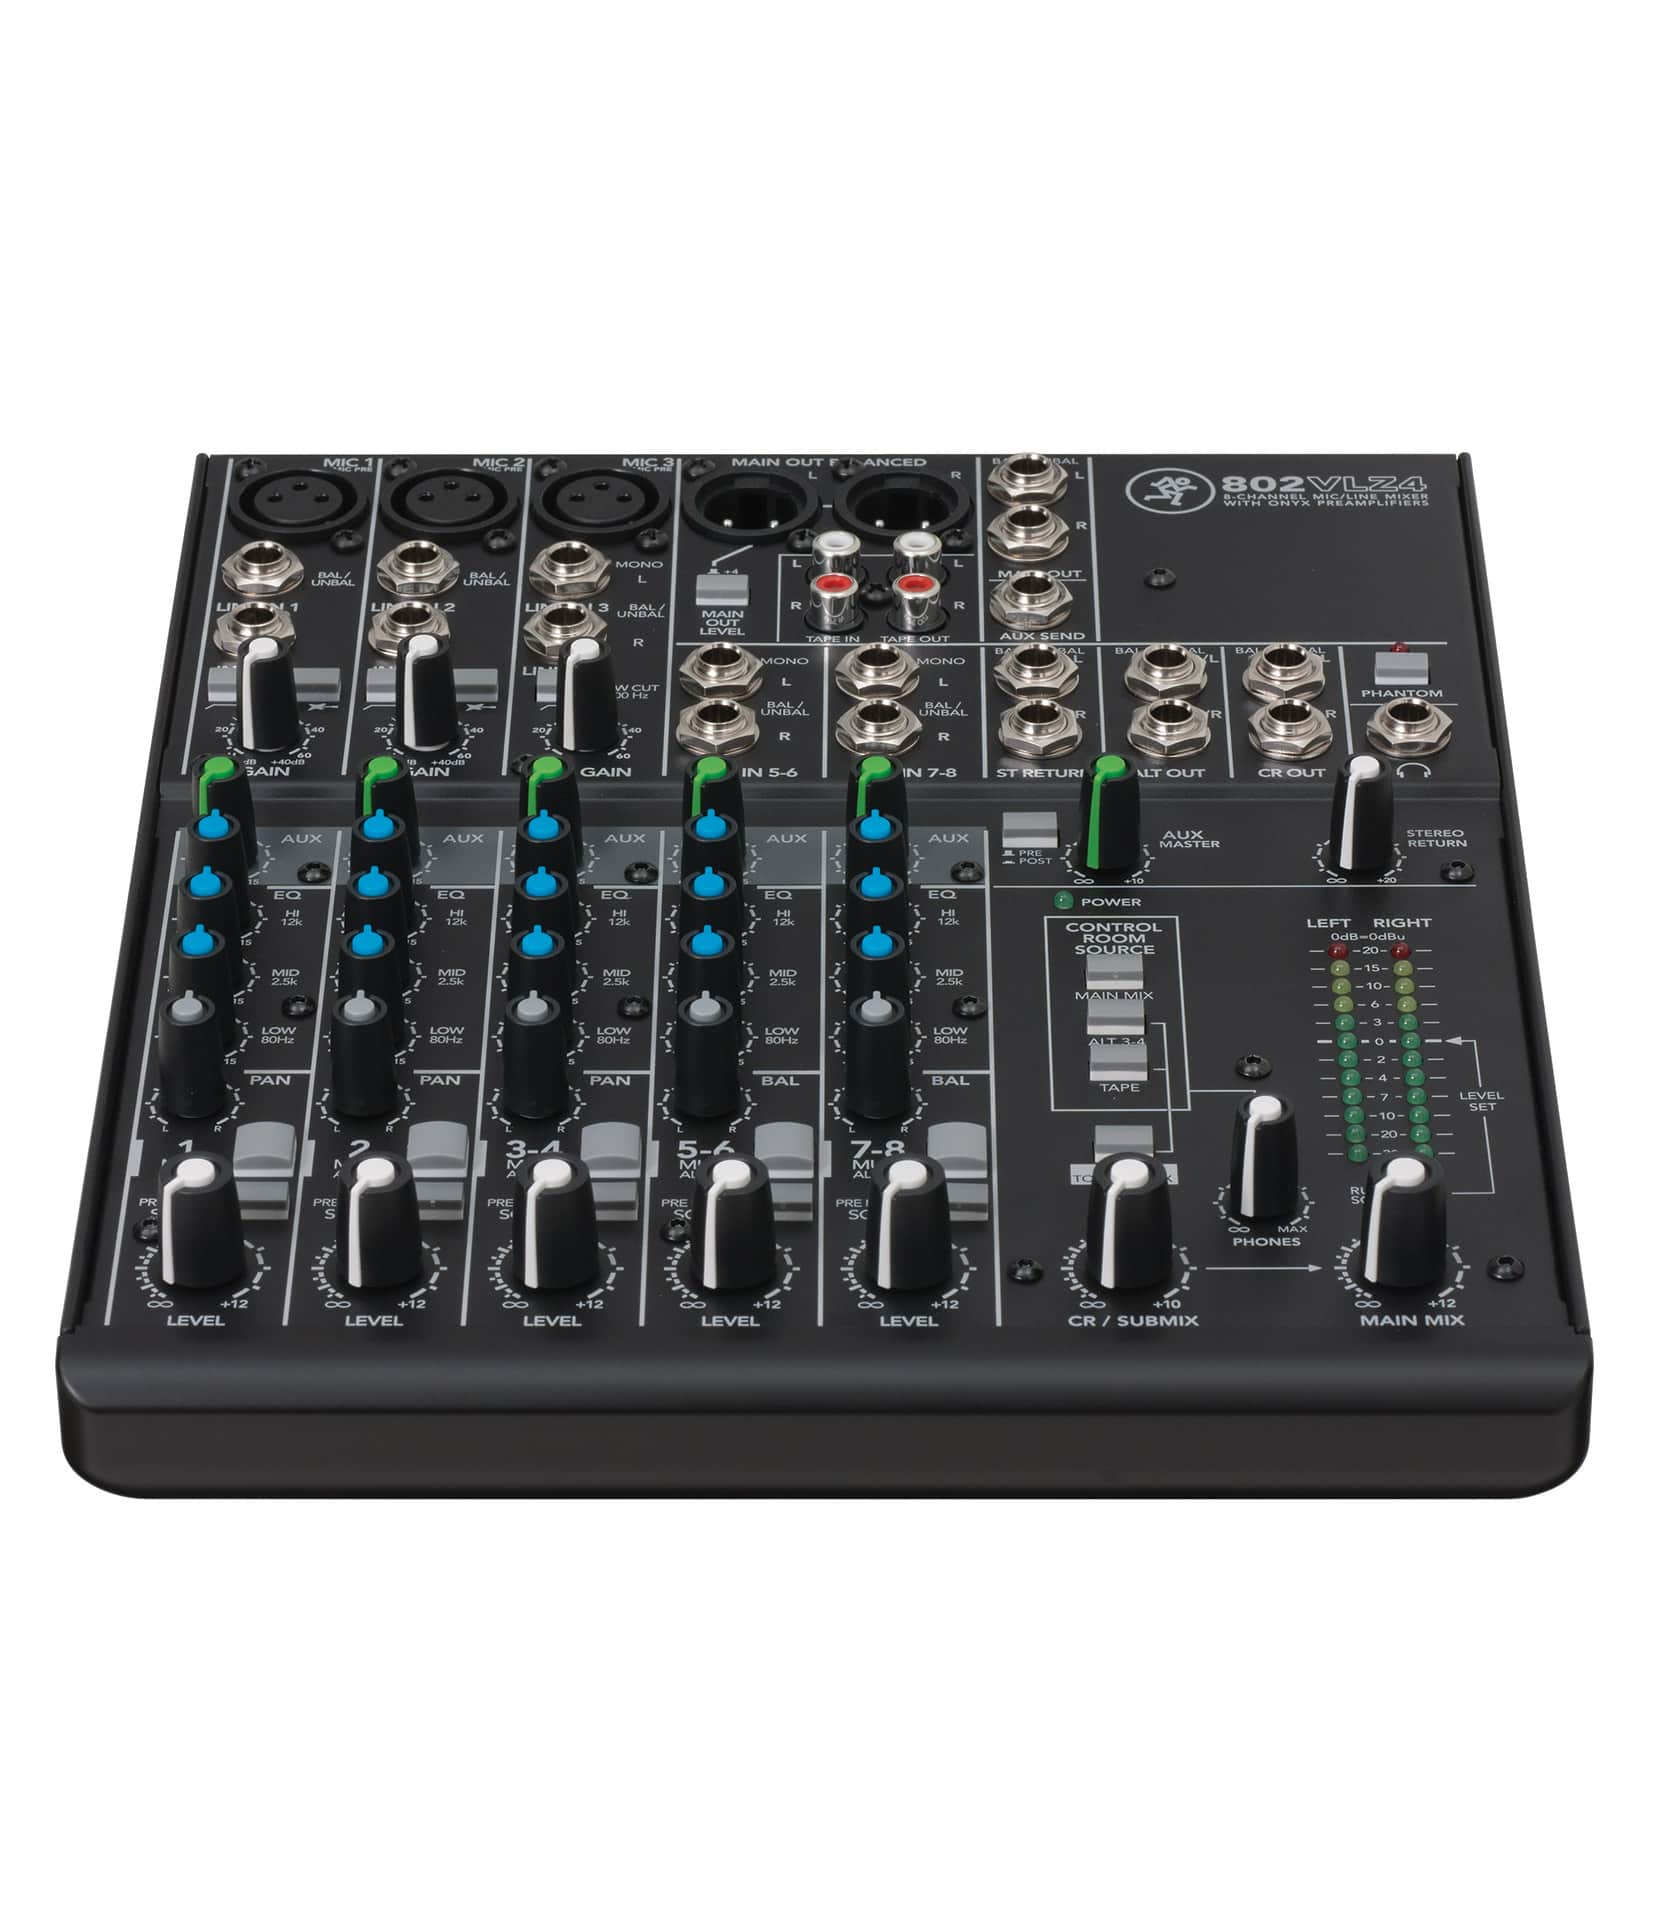 802VLZ4 8 channel Ultra Compact Mixer - Buy Online